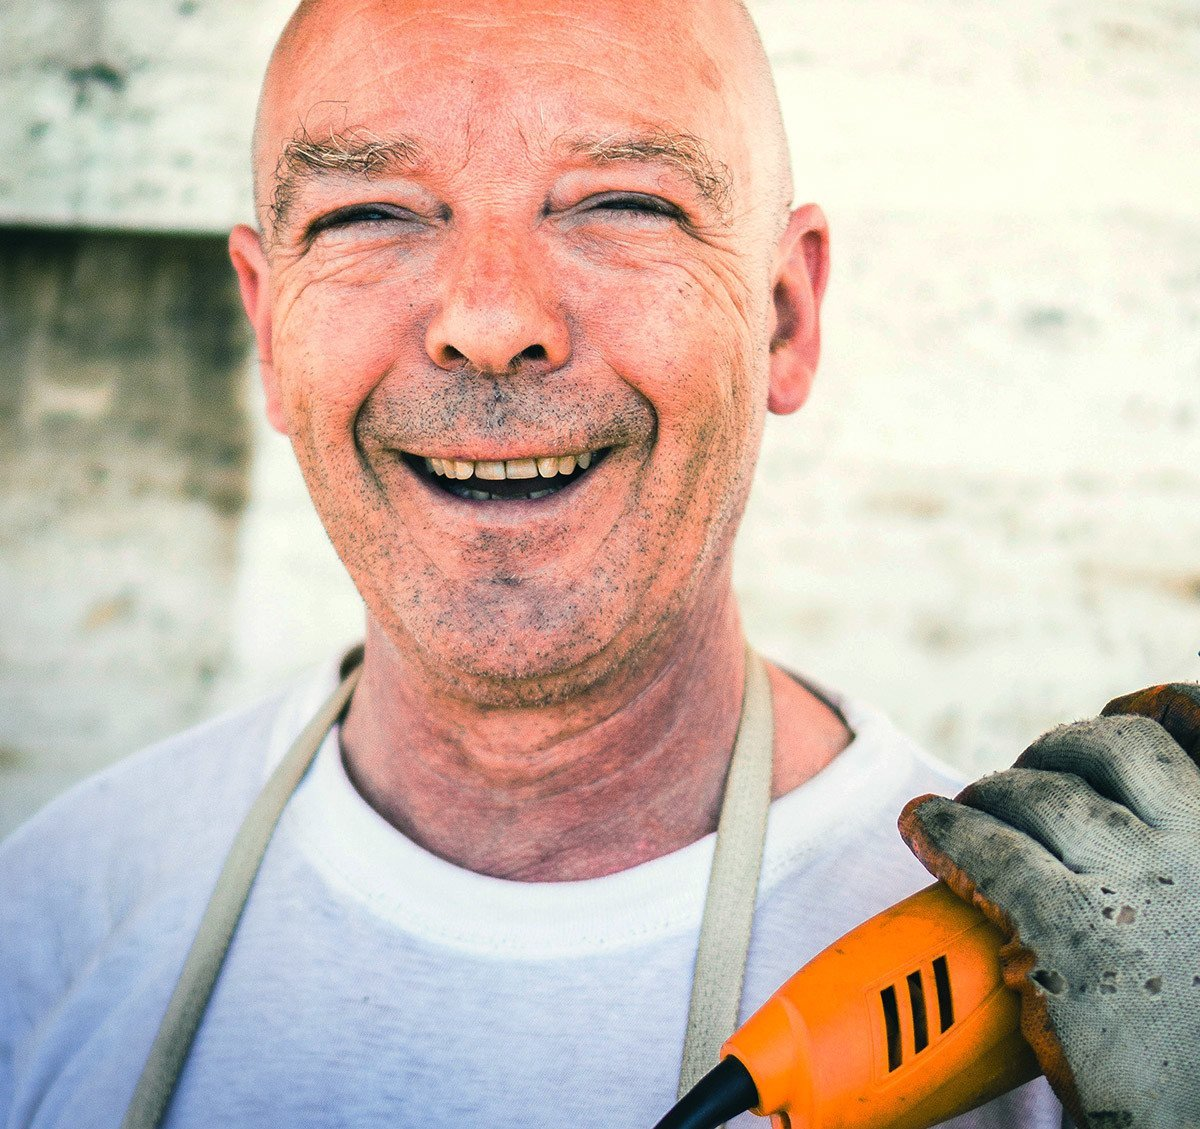 smiling man with tool